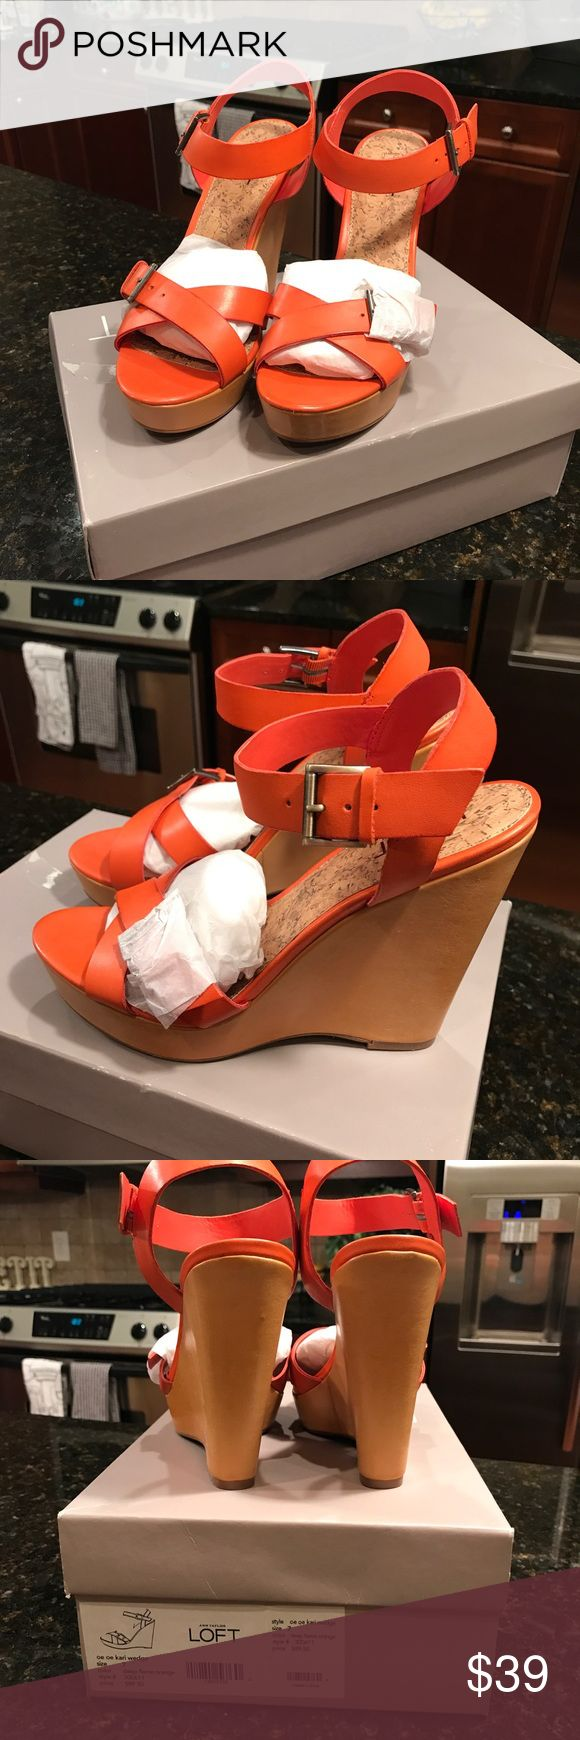 NWT Loft wedges size 7 Orange wedge sandals purchased from Loft. Never worn... in original packaging LOFT Shoes